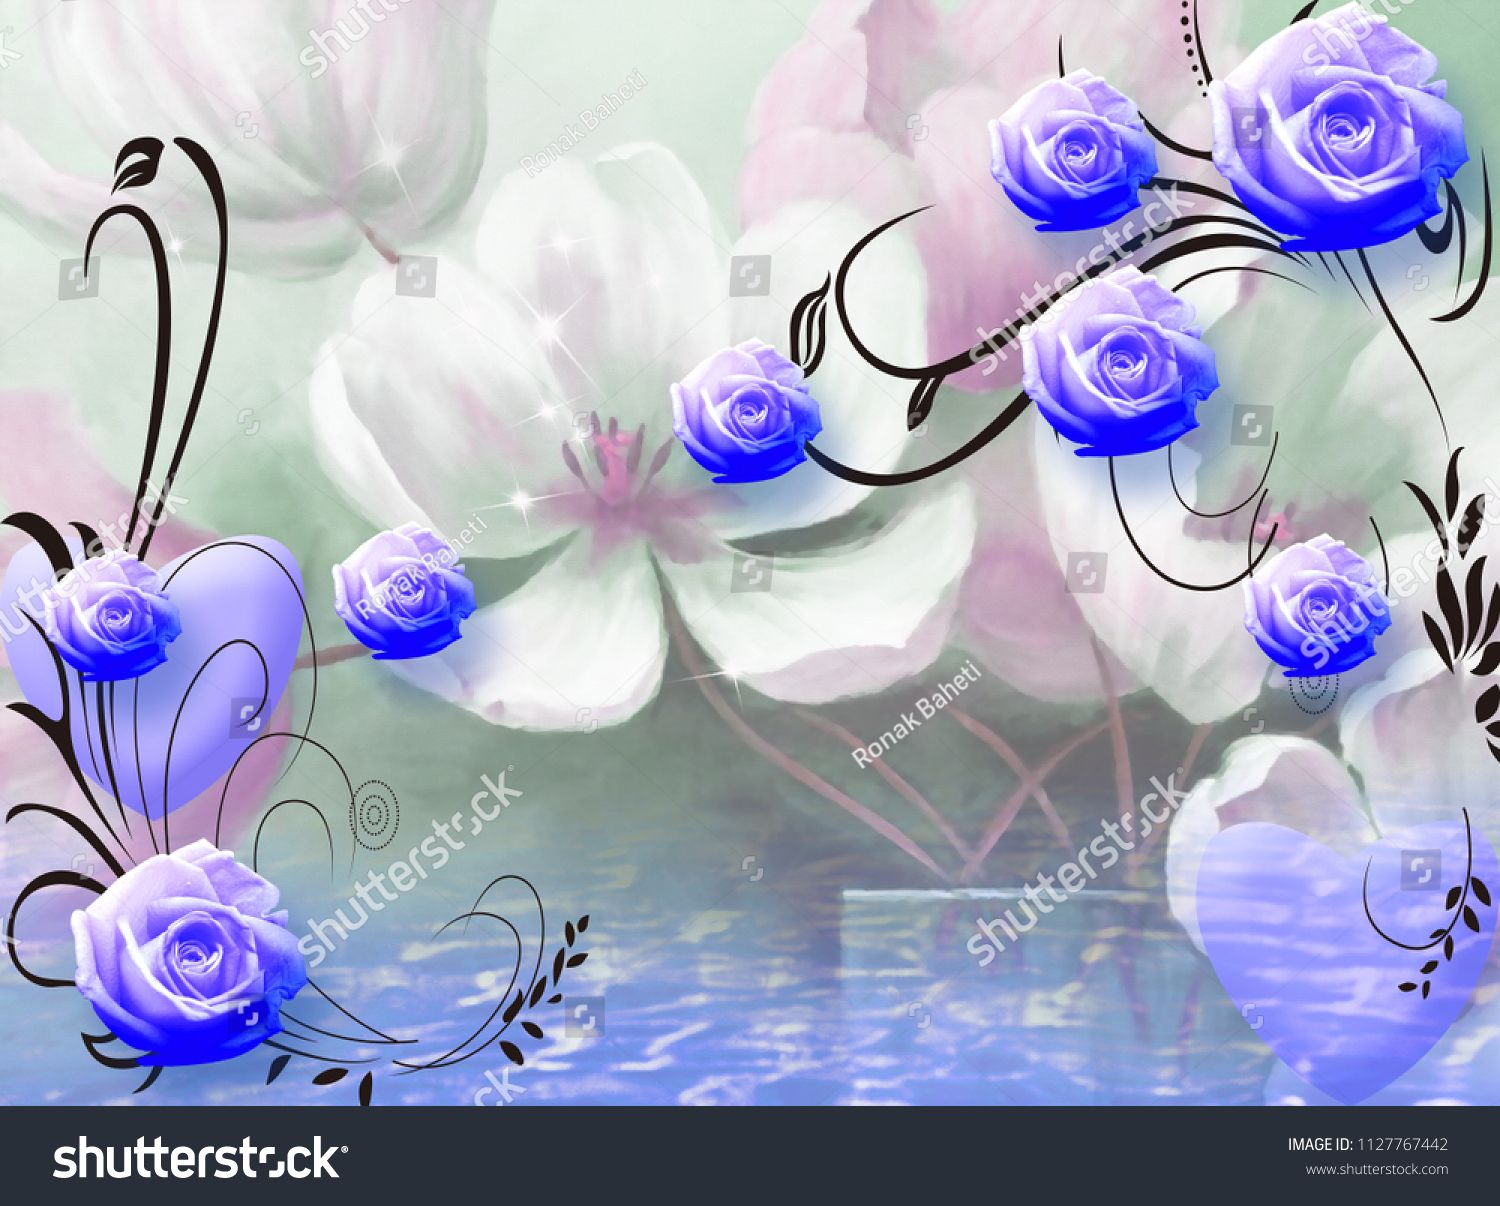 3d Canvas flower background with heart.flowerCanvasheart